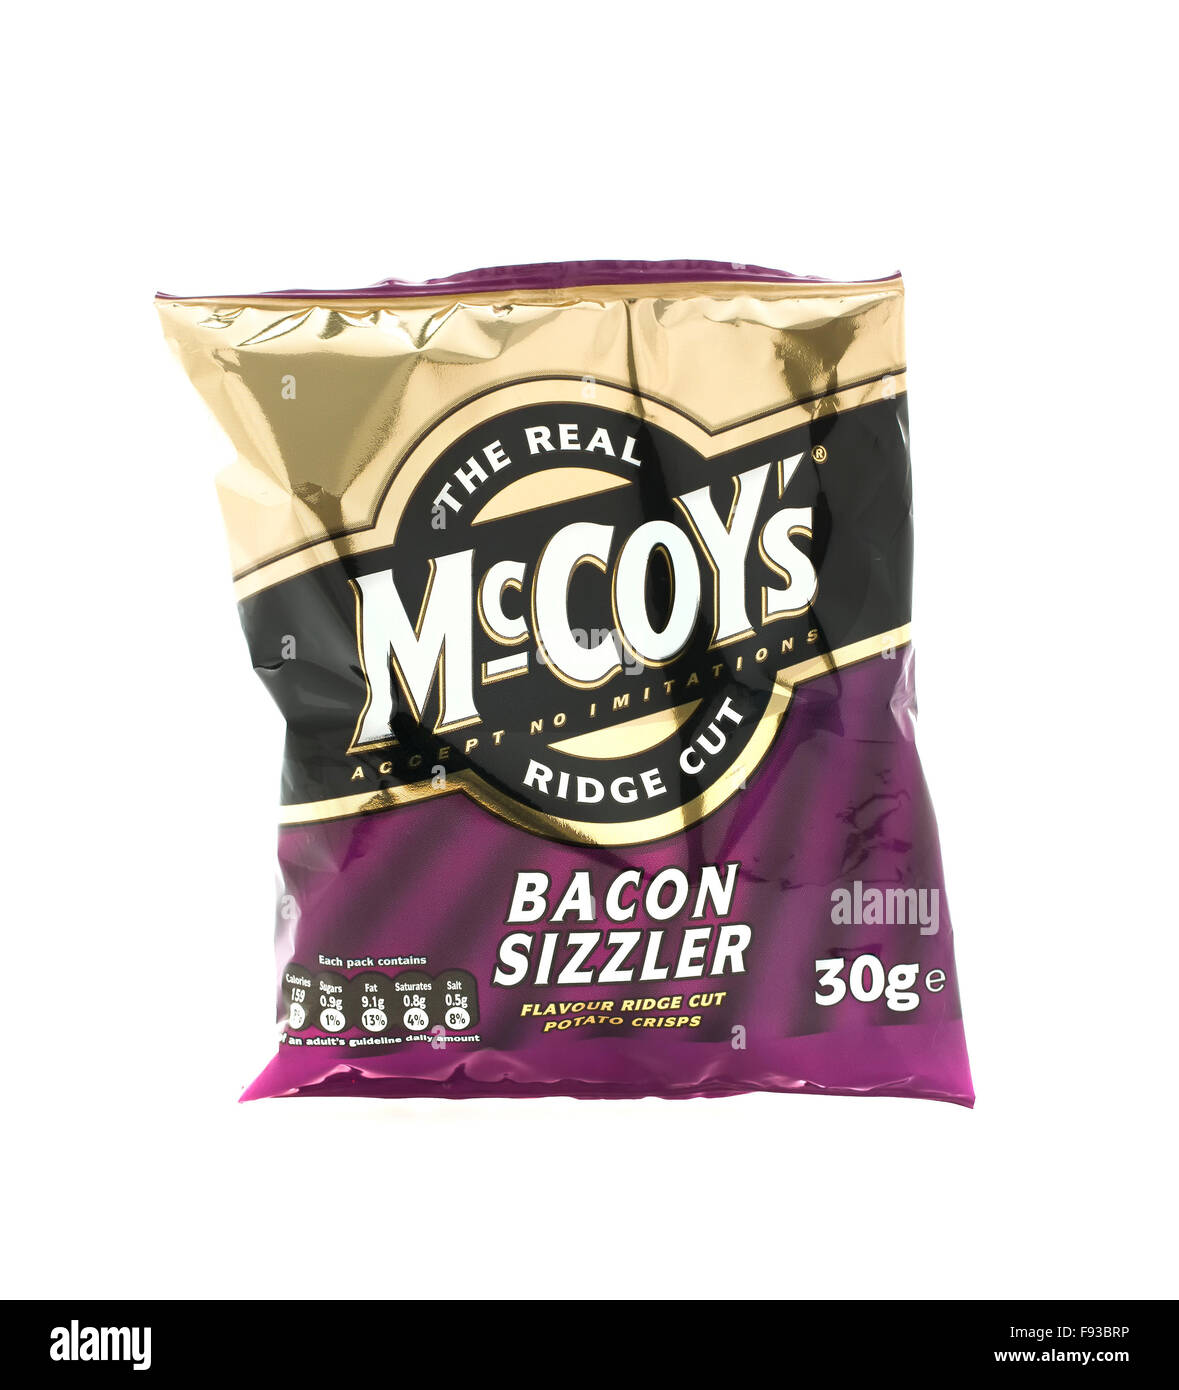 Bacon Sizzler McCoy Ridge Cut Crisps on a white background, McCoy's are made by KP Snacks in the UK - Stock Image